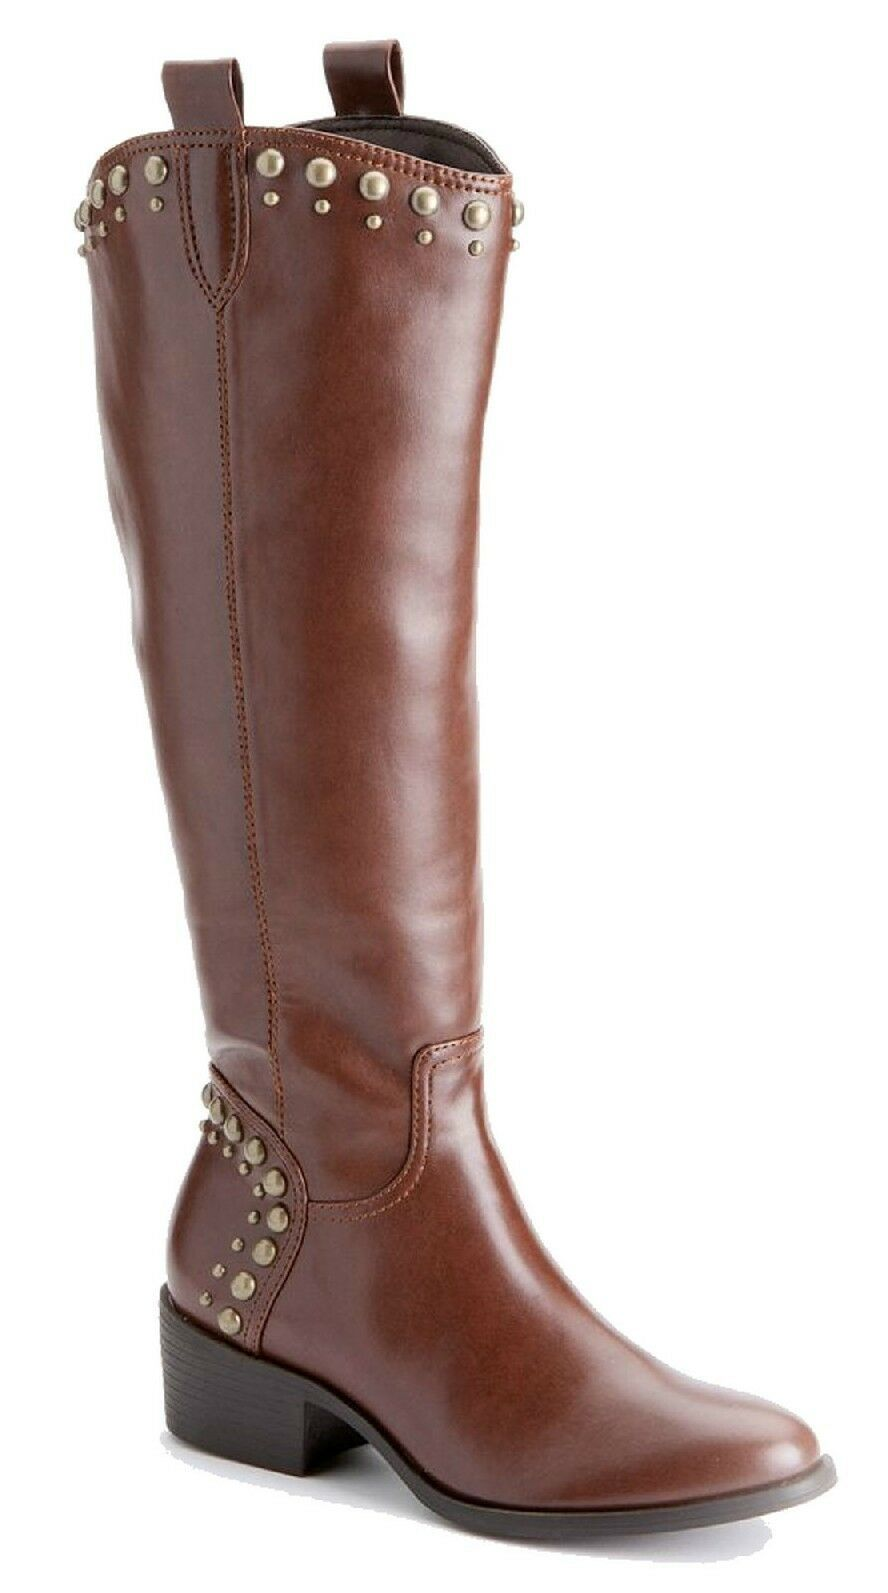 Primary image for Elle Womens Addison Cognac Brown Studded Tall Knee High Boots 6 M 6M